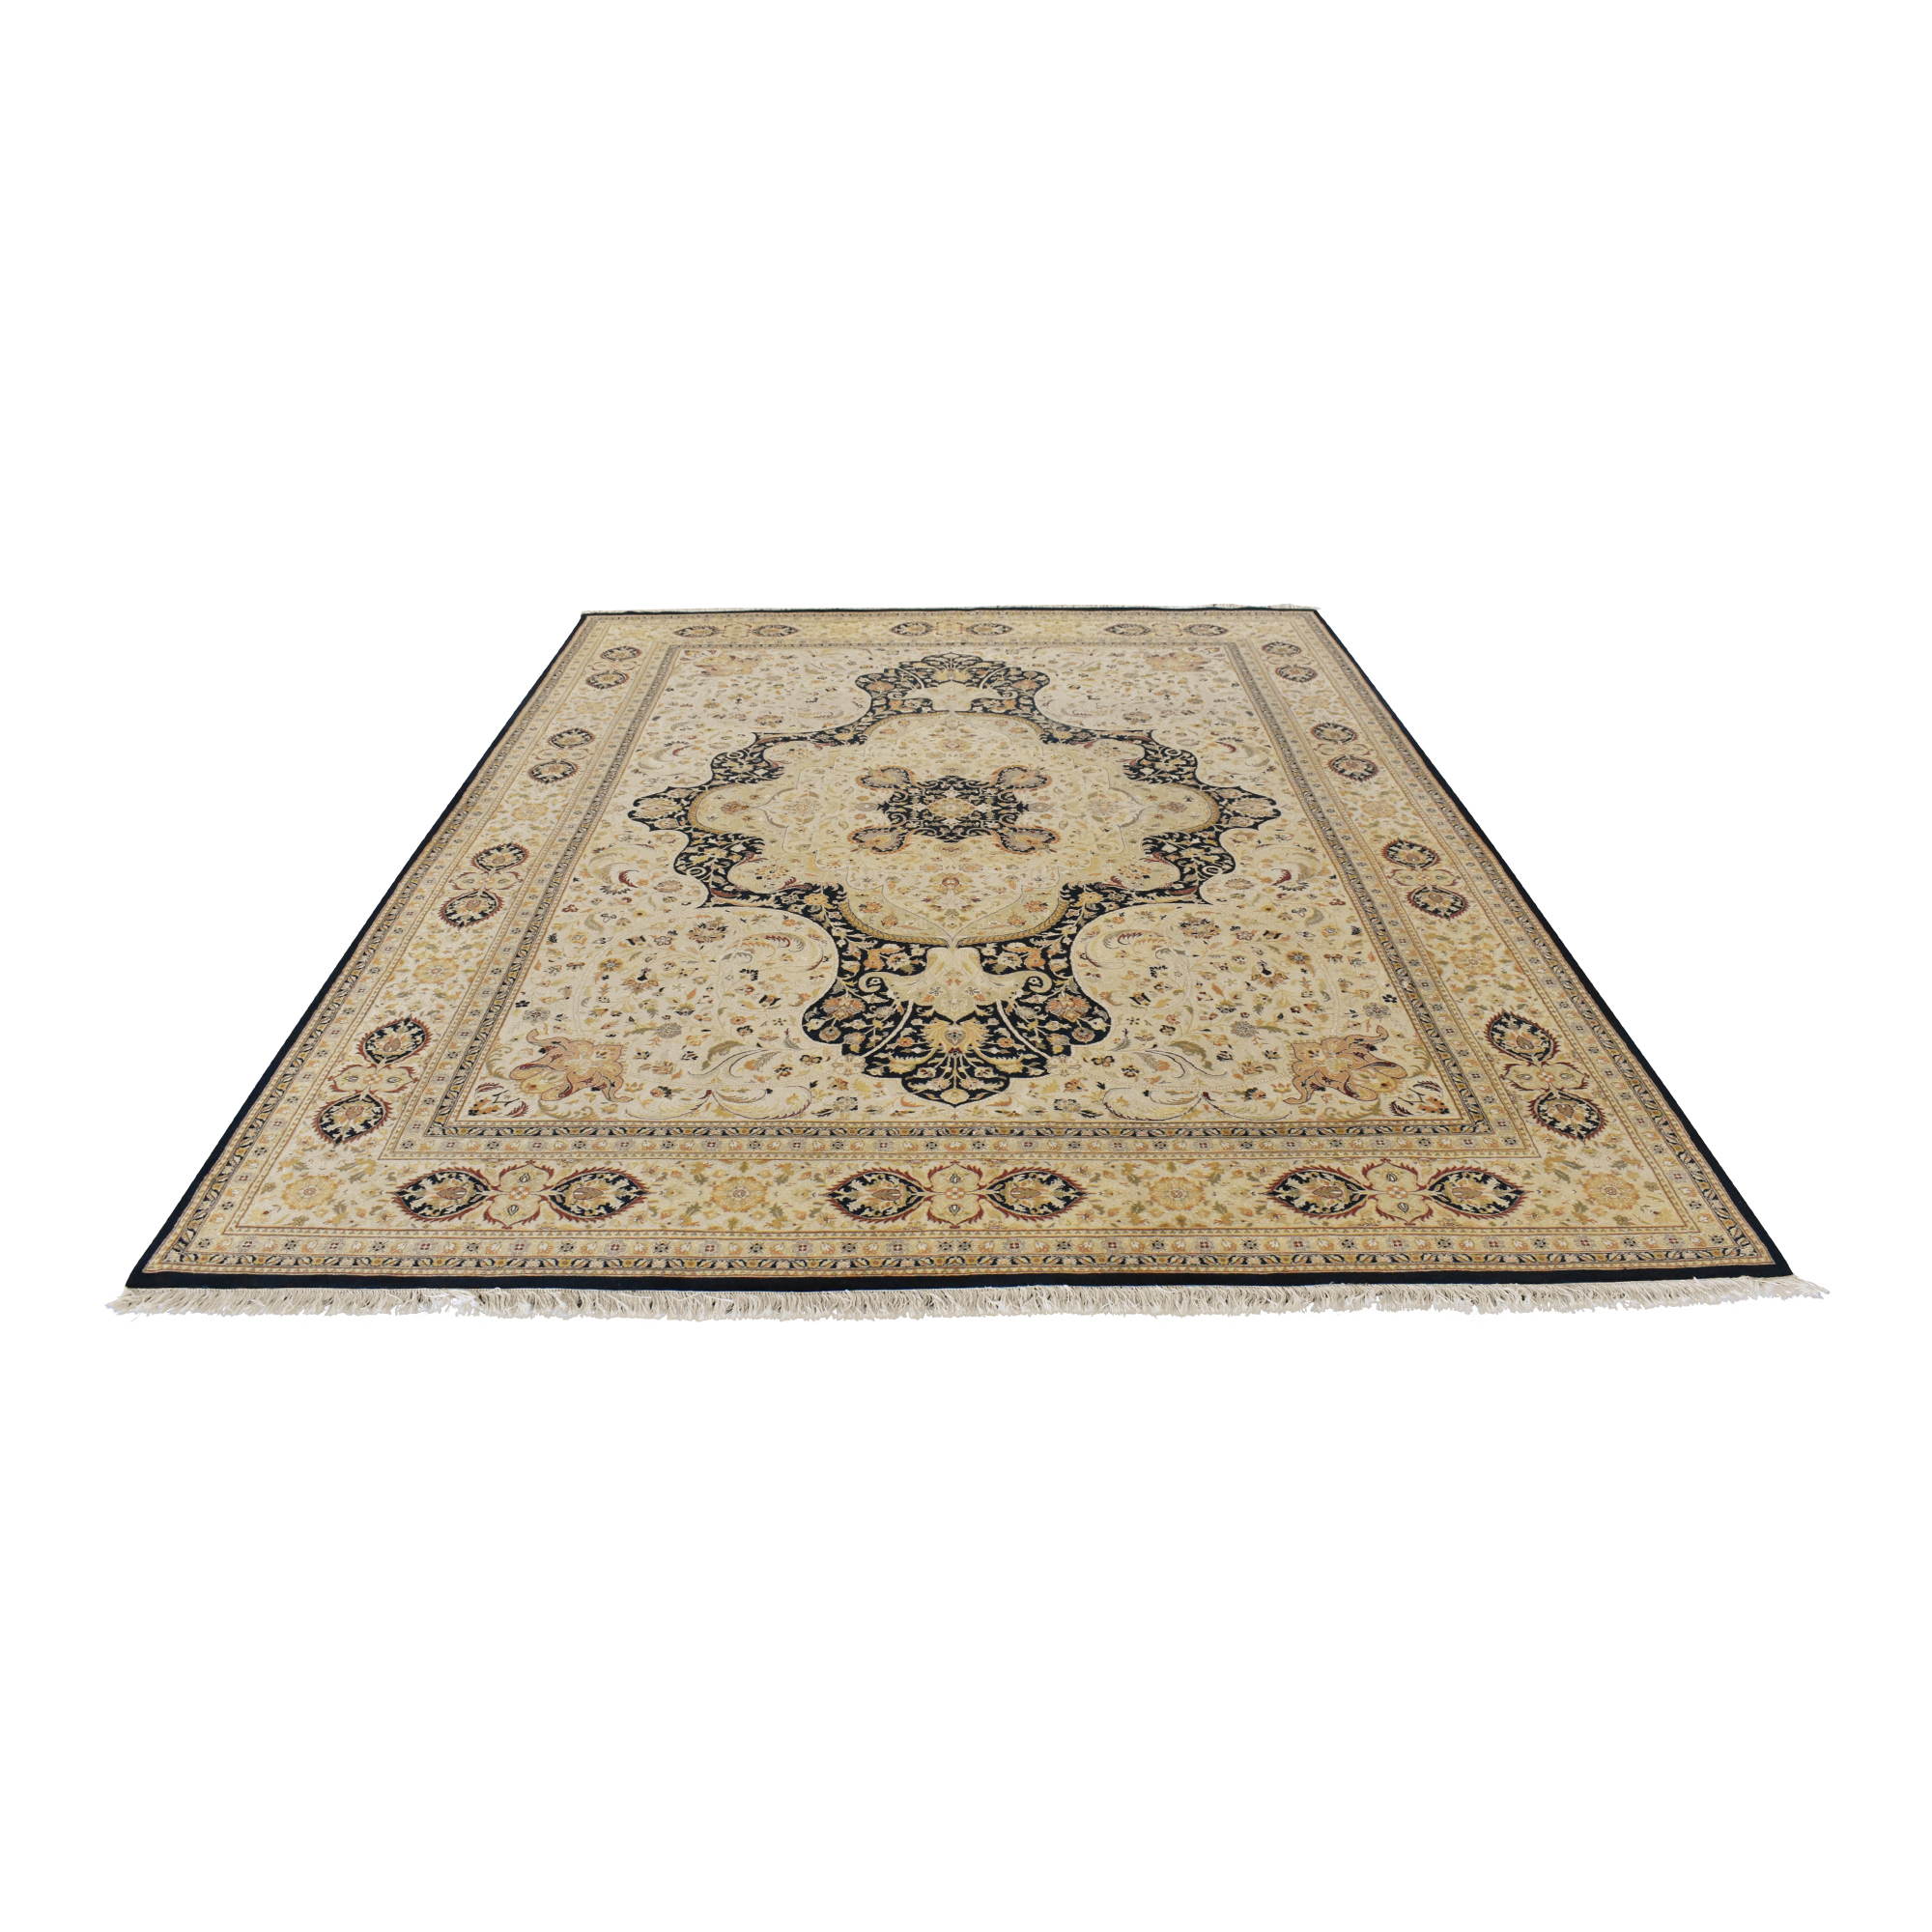 Traditional Area Rug / Rugs